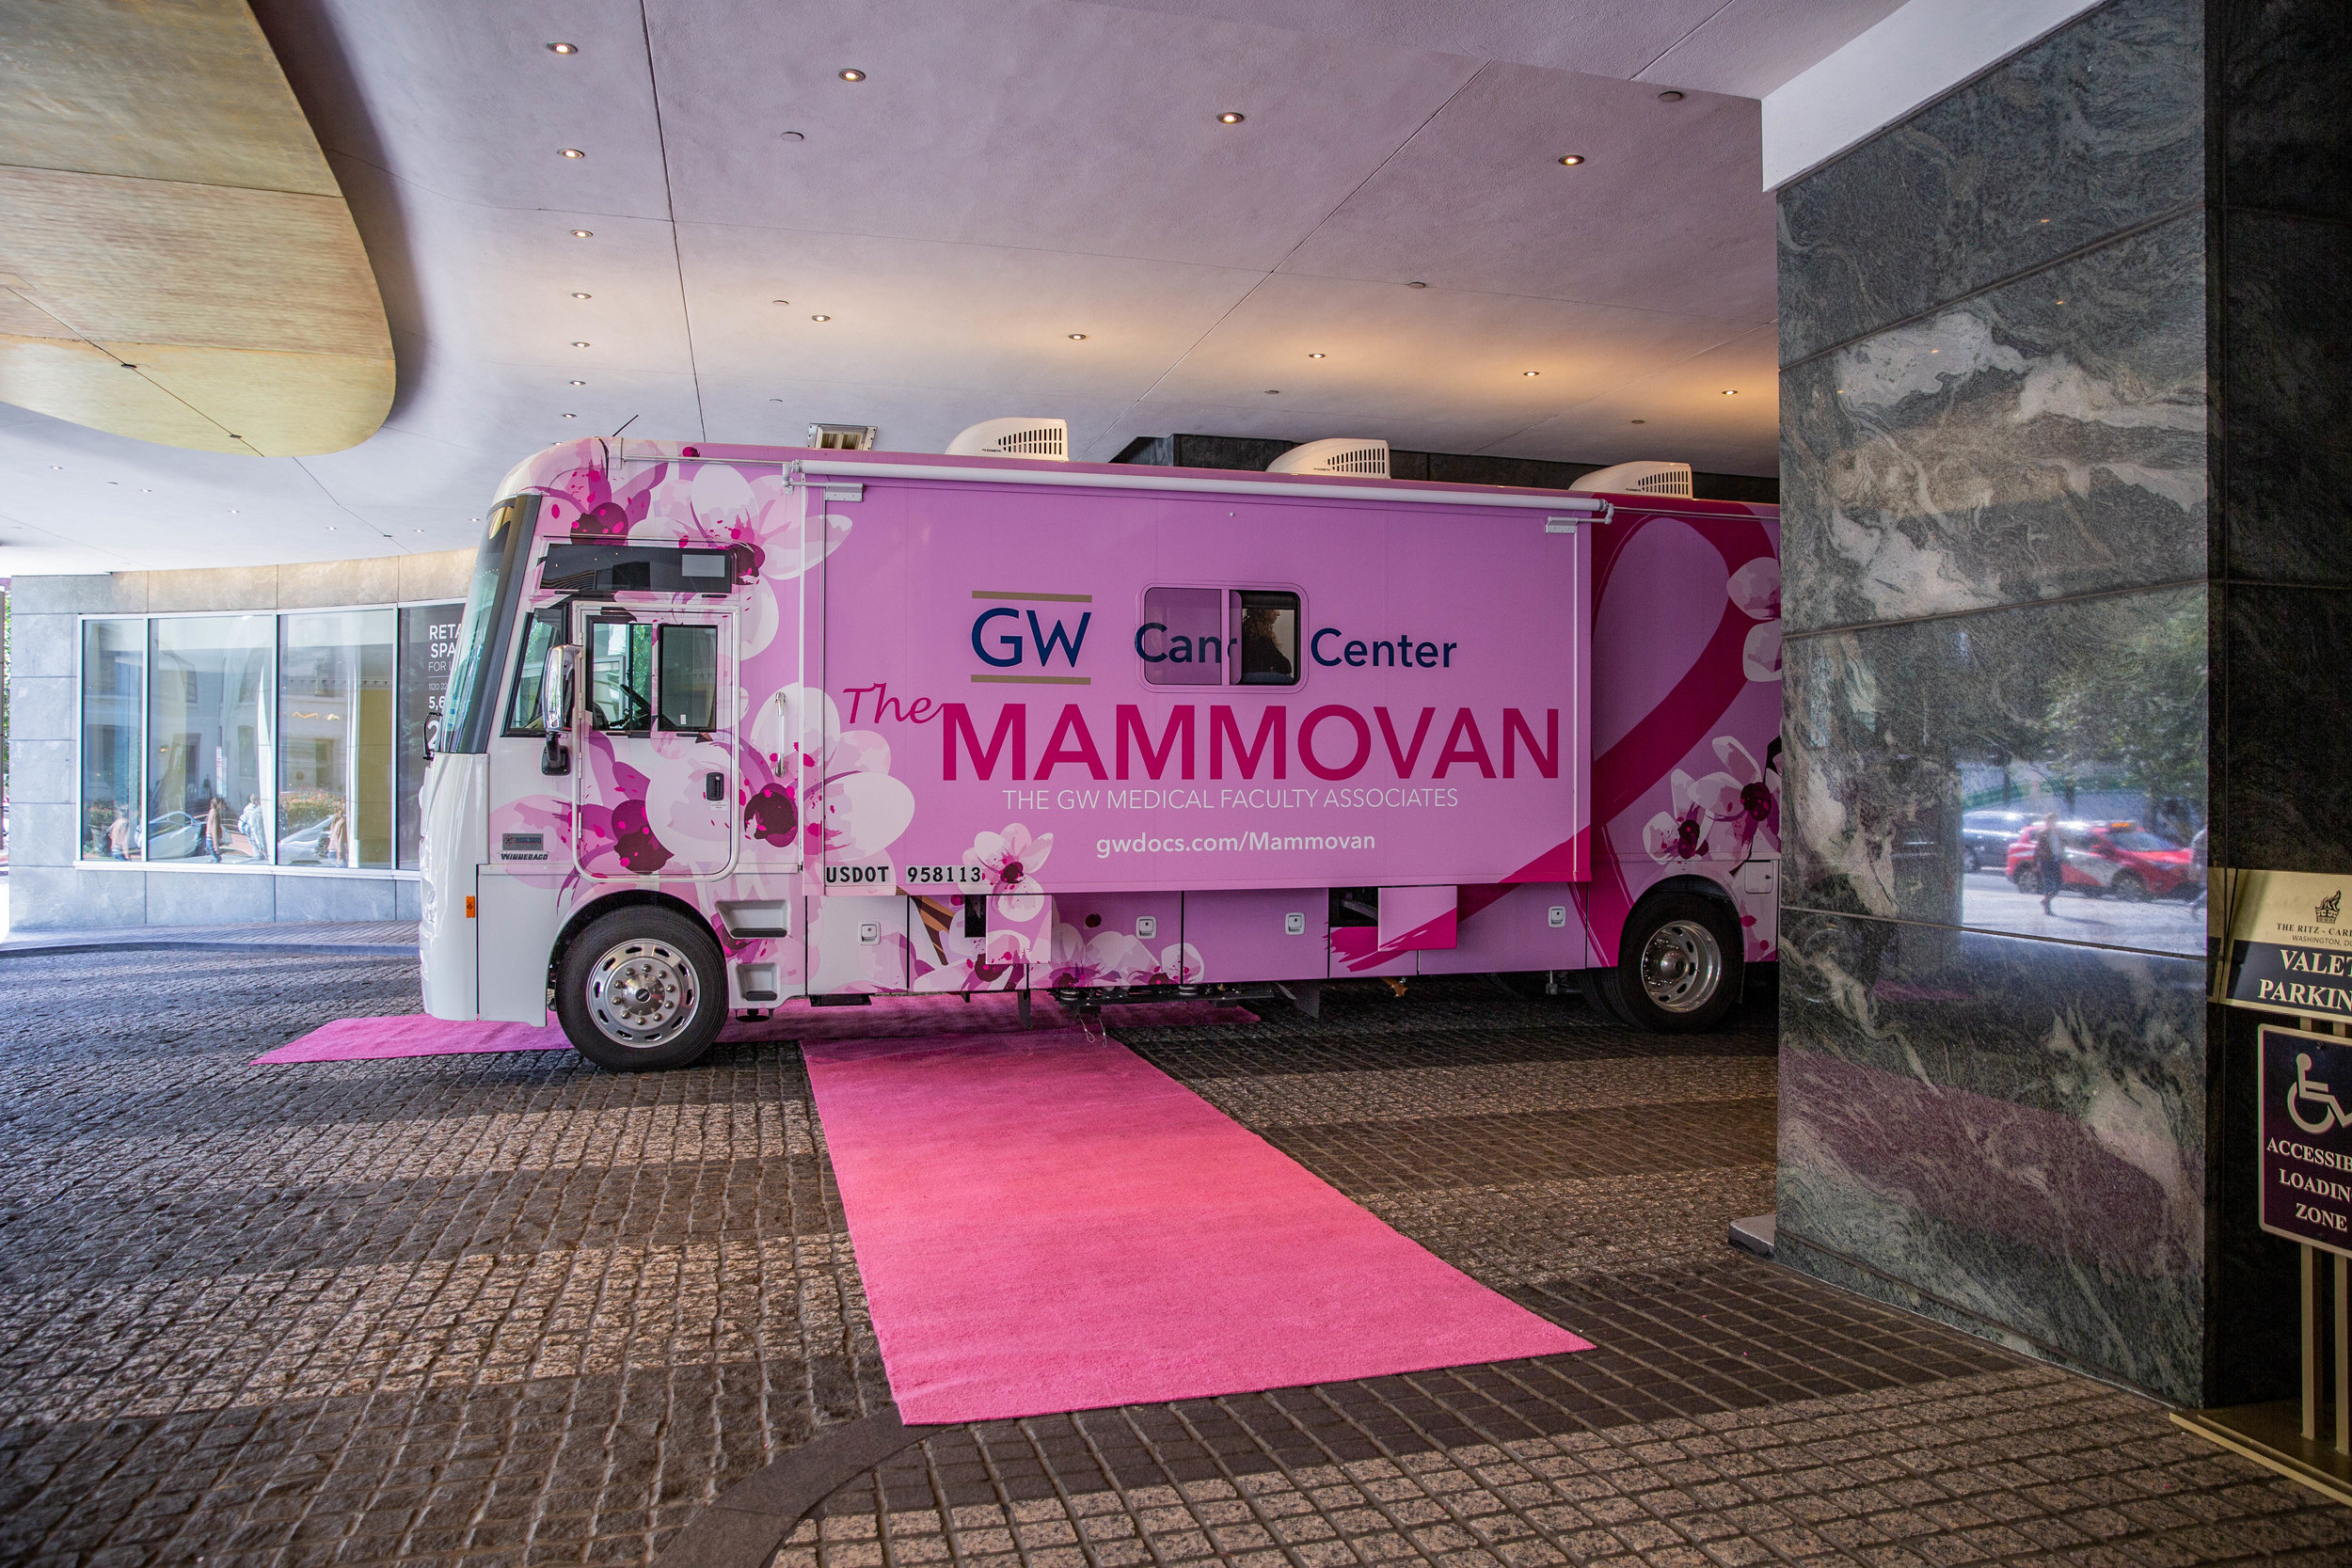 Past Events - The GW Blush Lunch is the signature benefit supporting the GW Comprehensive Breast Center program of the GW MFA and its mobile mammography unit better known as The Mammovan. The event has raised more than $1 million to deliver breast cancer screening to women around metropolitan Washington regardless of their ability to pay.